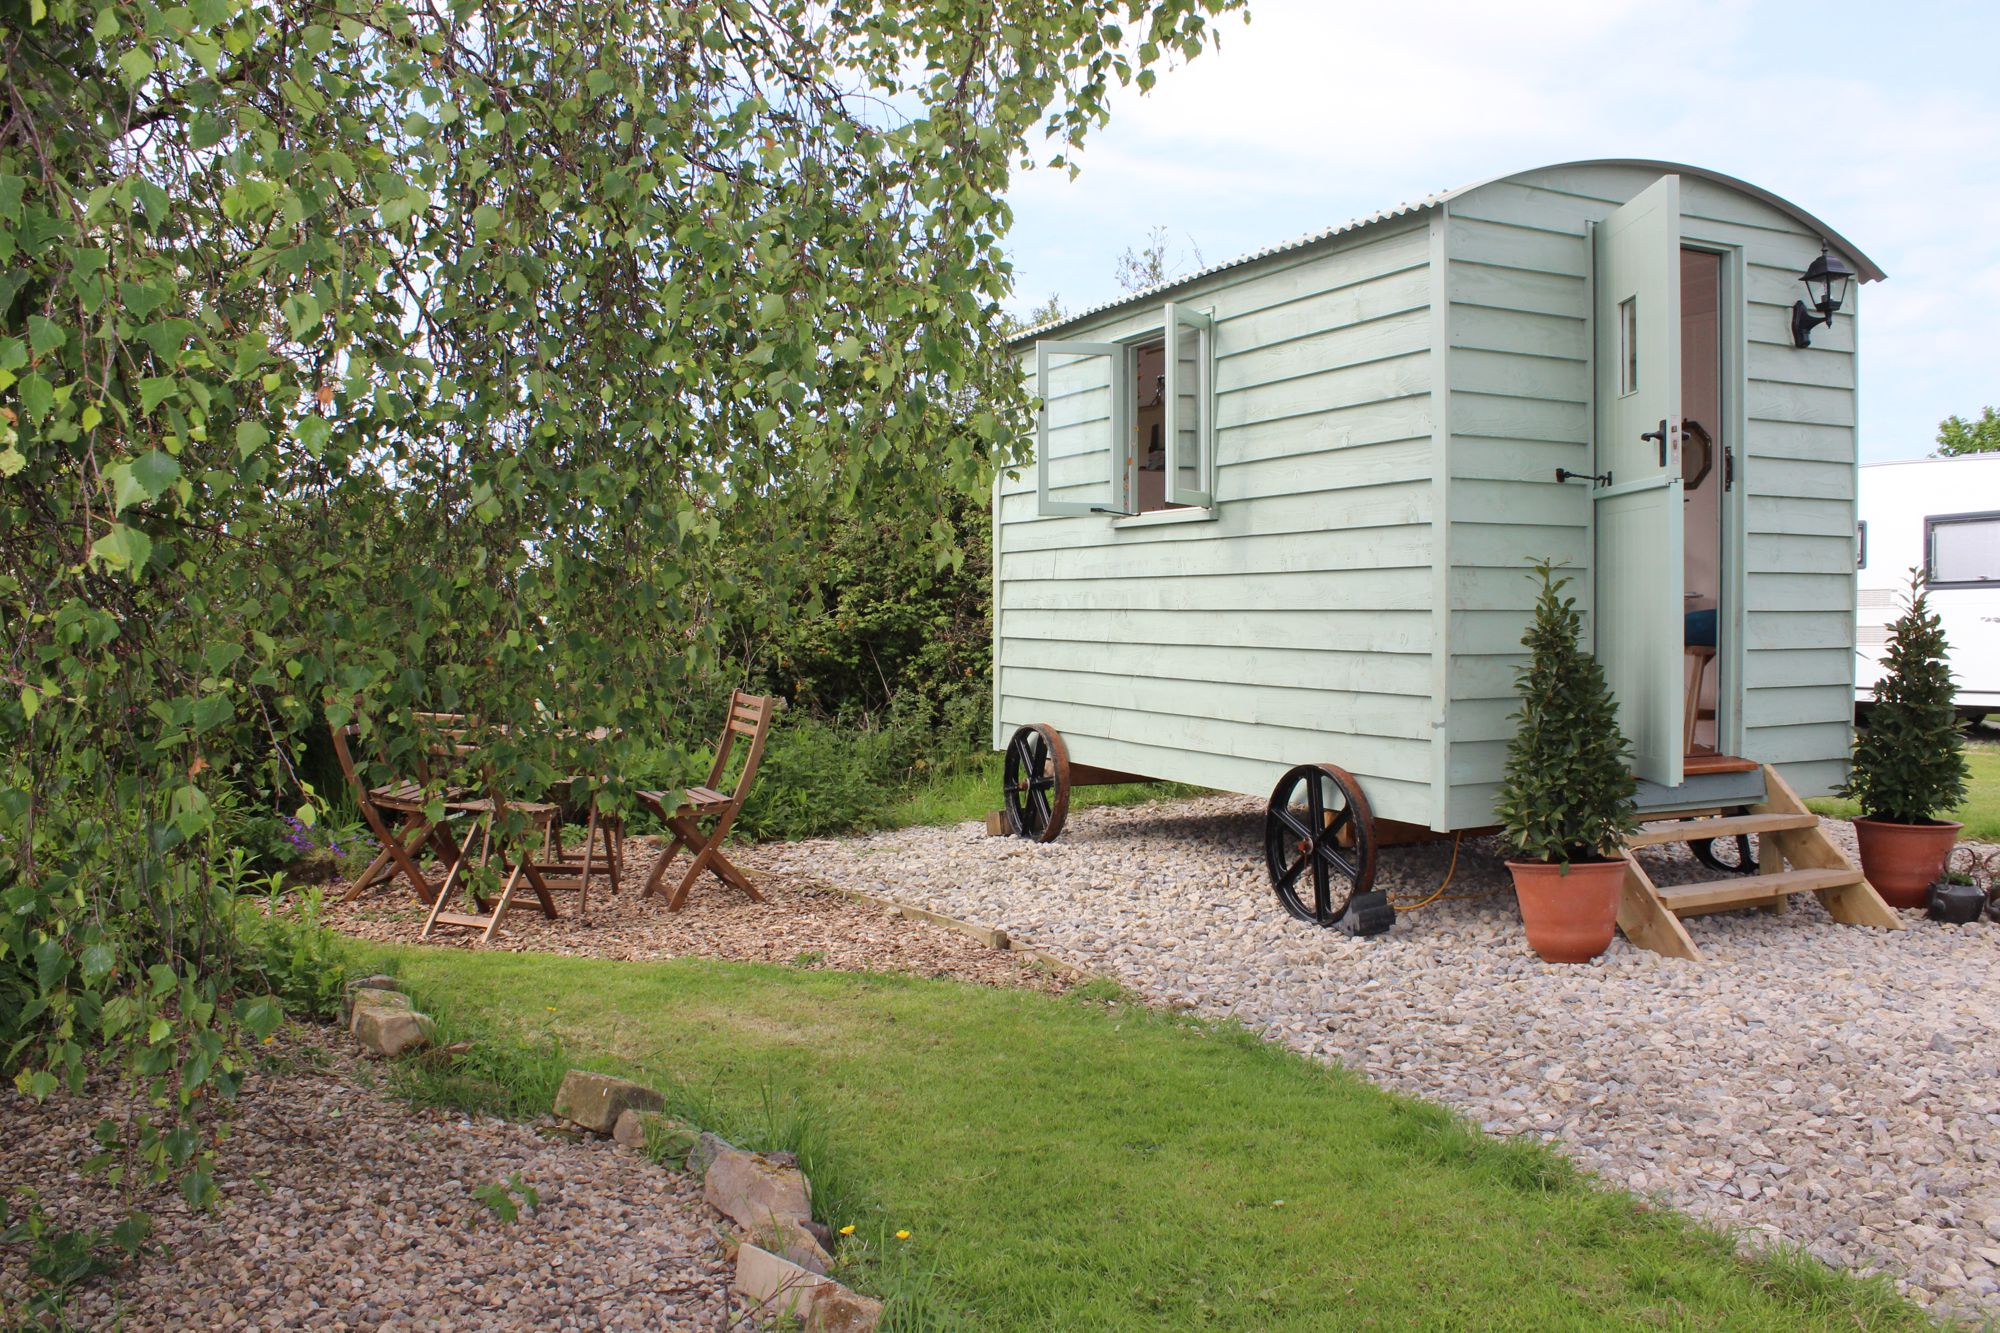 Glamping near me - find glamping near your location